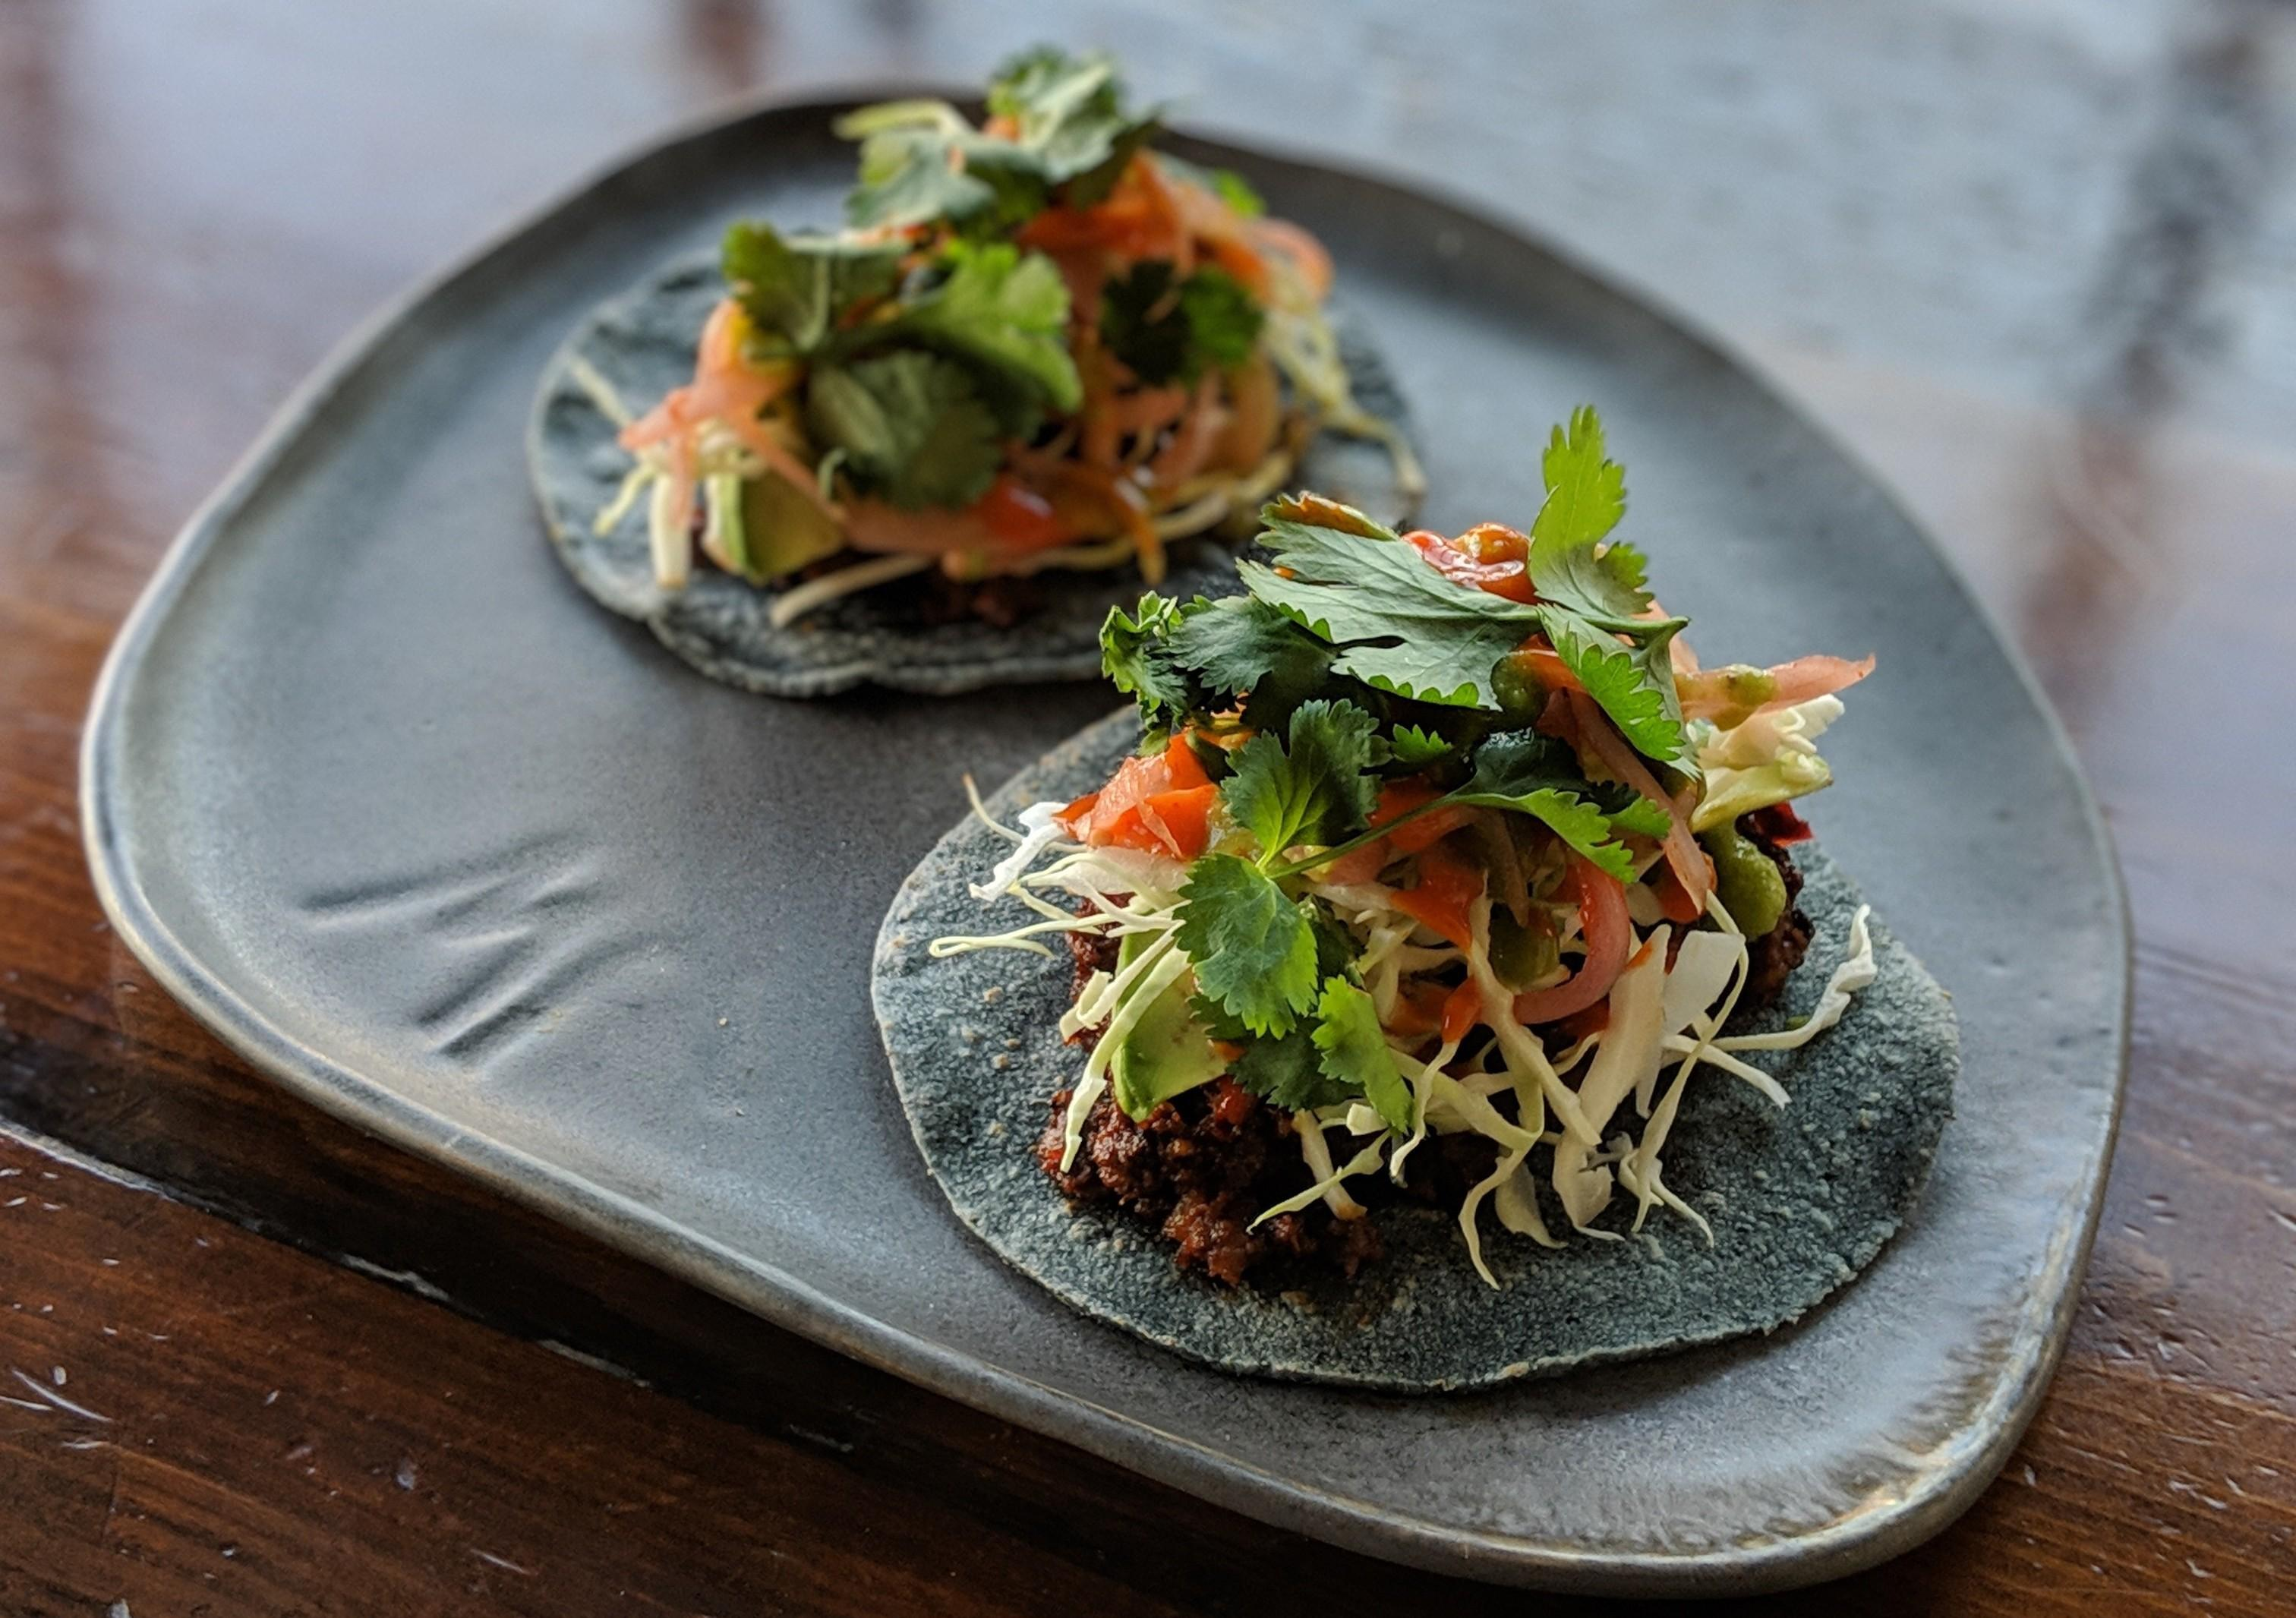 The chorizo tacos at Espita Mezcaleria are currently only available on the lunch menu.{ }(Image: Courtesy Espita Mezcaleria)